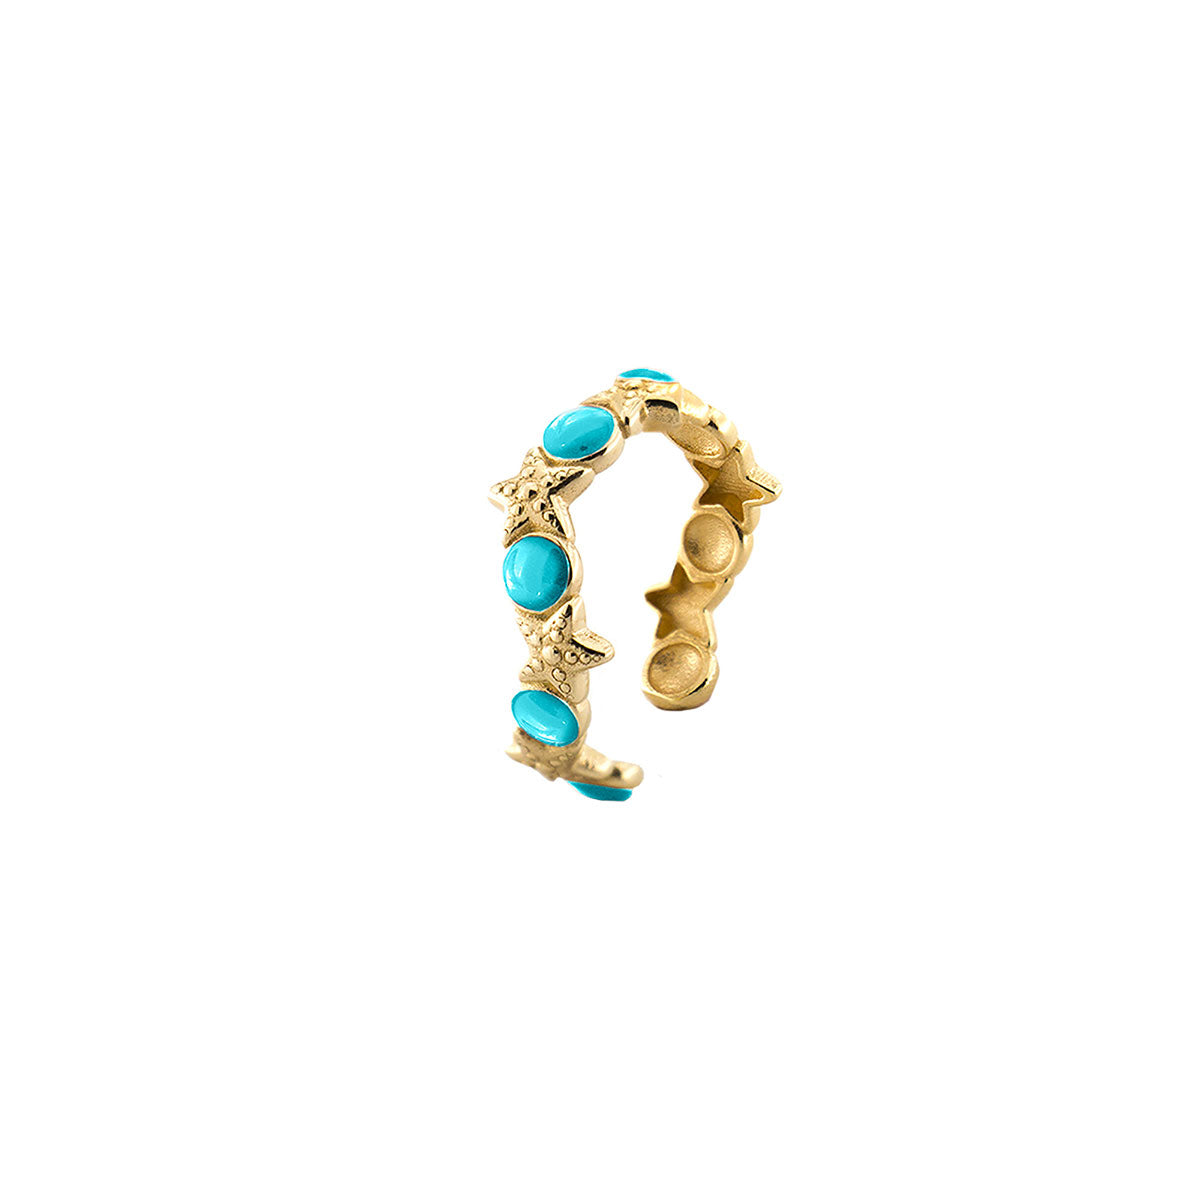 Rings - Ring - Enameled Cabochon Turquoise Dots and Starfishes - 1   Rue des Mille